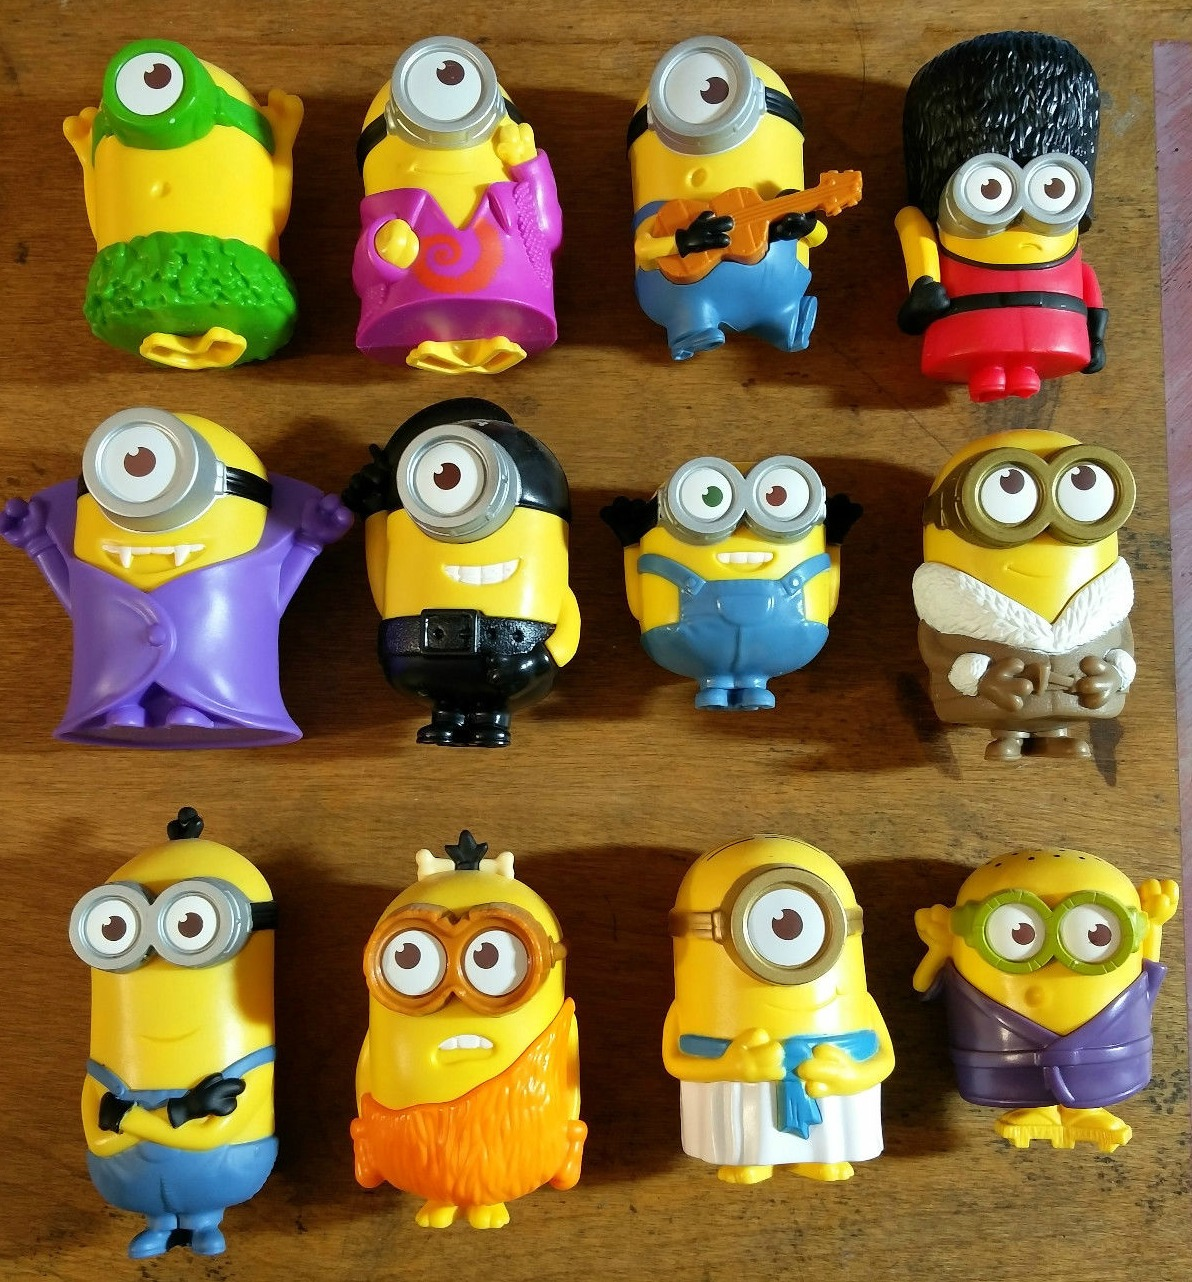 10f71c4fb5 Rows of McDonald s Minion happy meal toys on a wooden background.